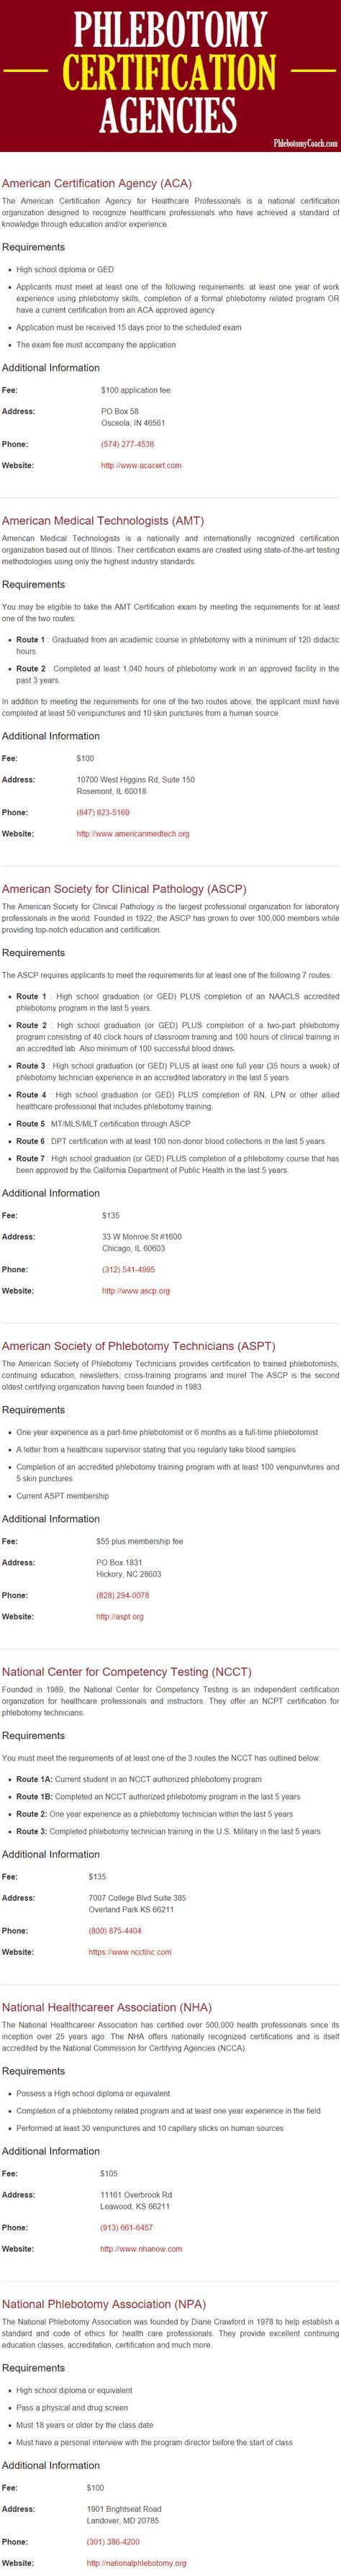 National phlebotomy certification programs that will jump-start your career as a phlebotomist!